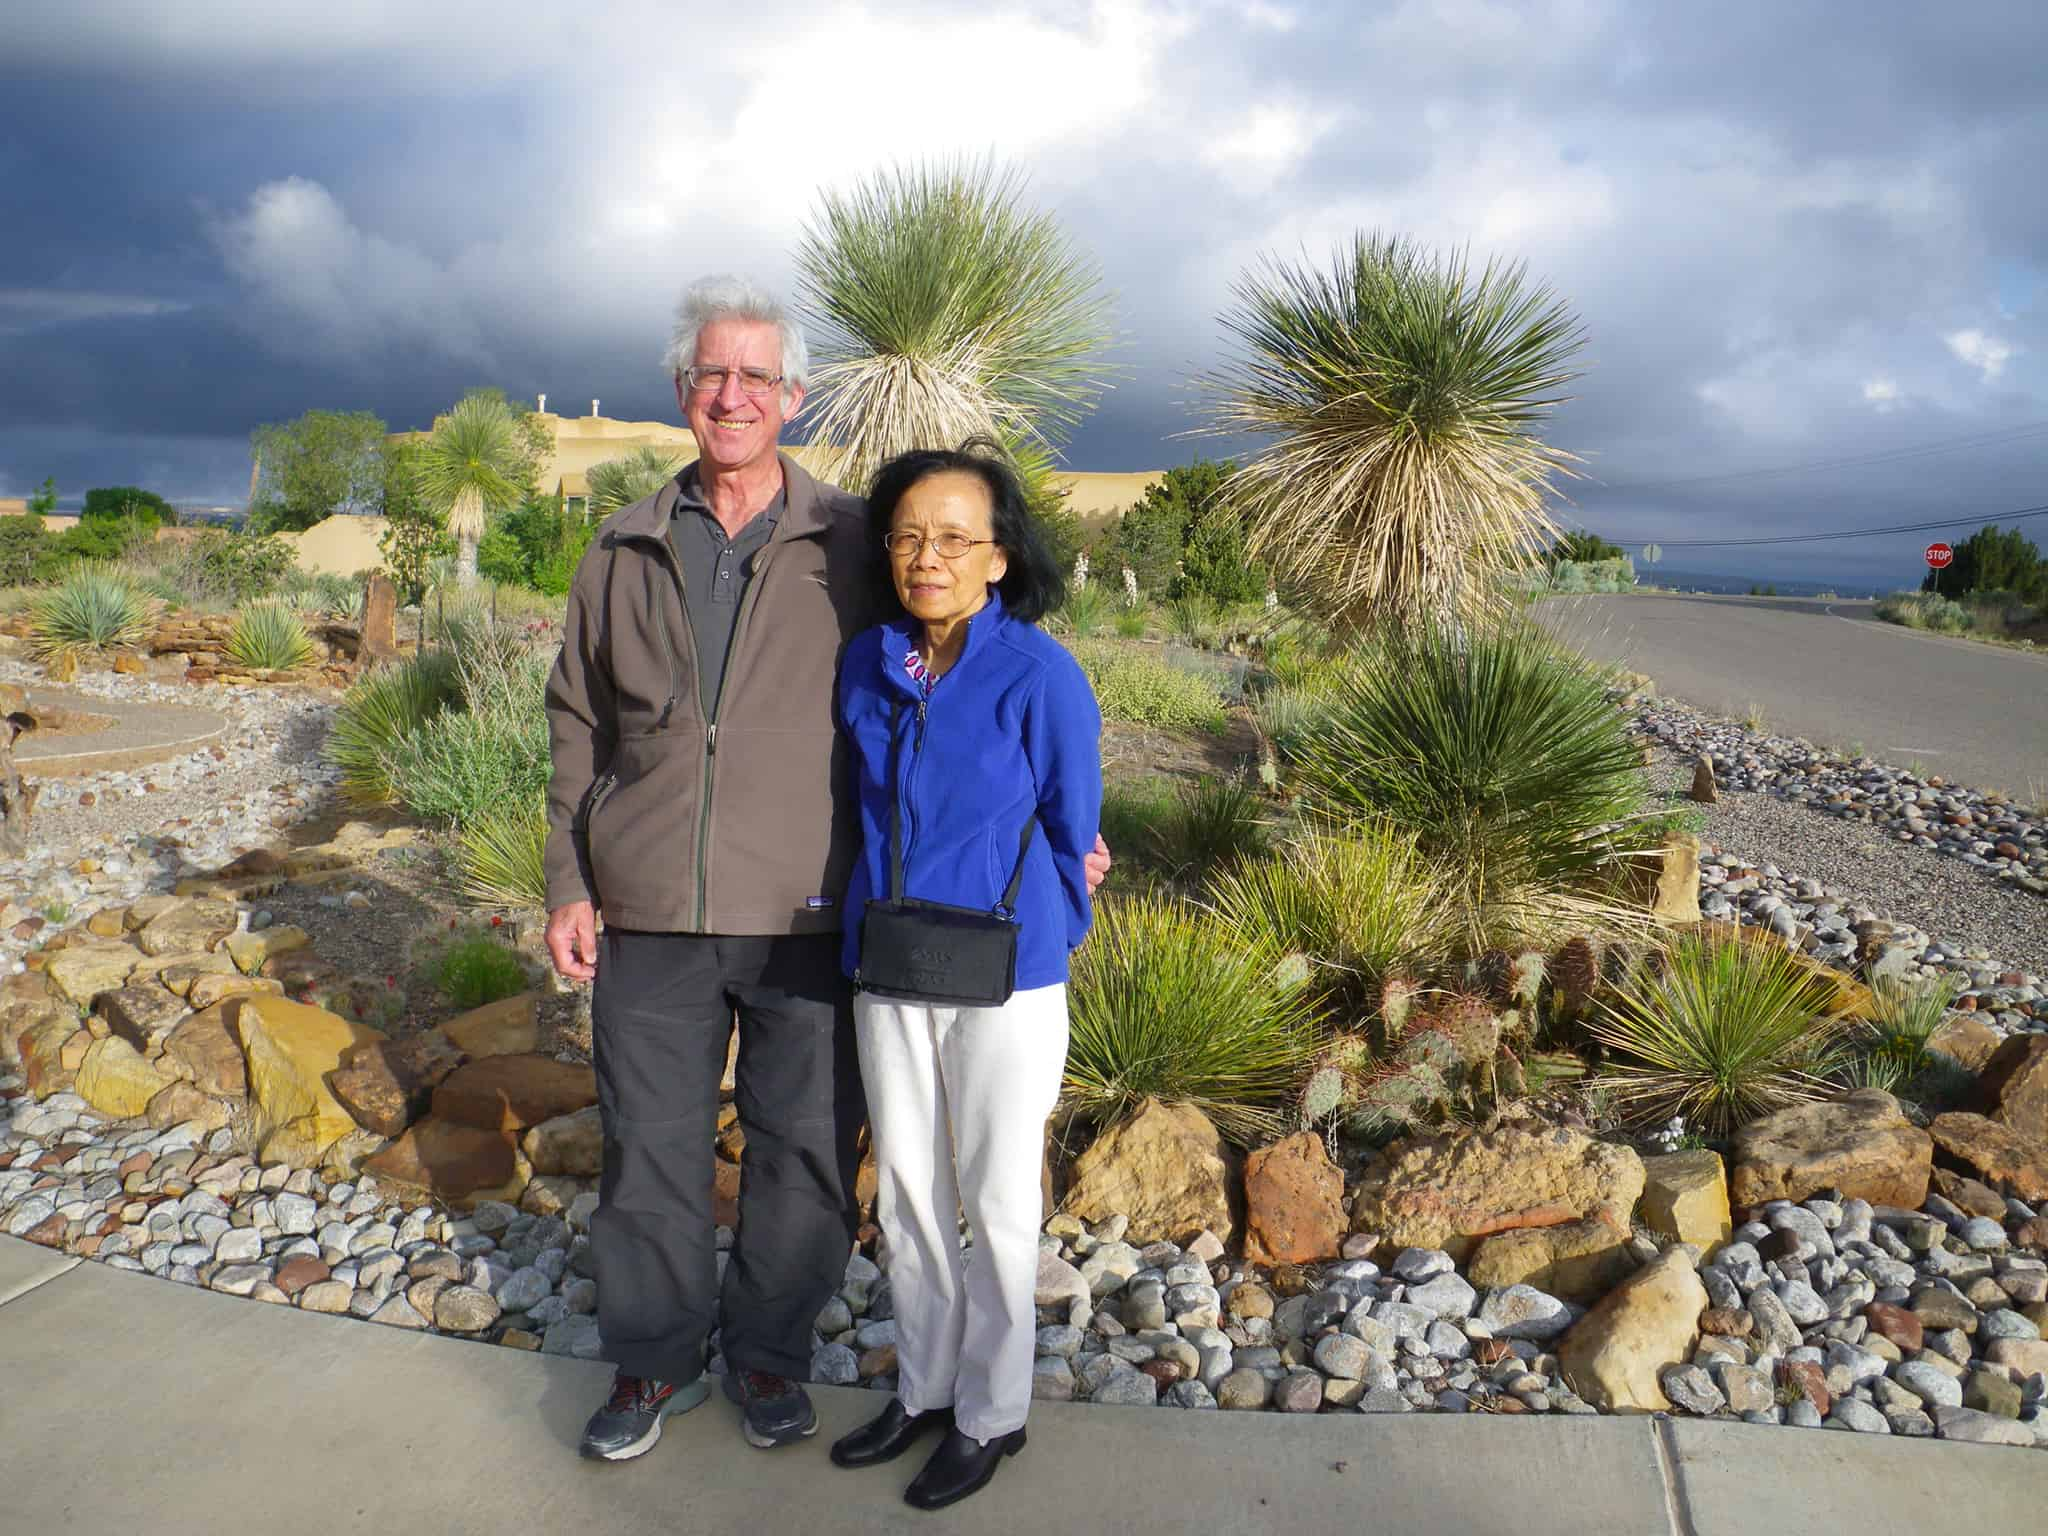 Portrait of Gerry Dienel and Nancy Cruz outside, surrounded by desert plants